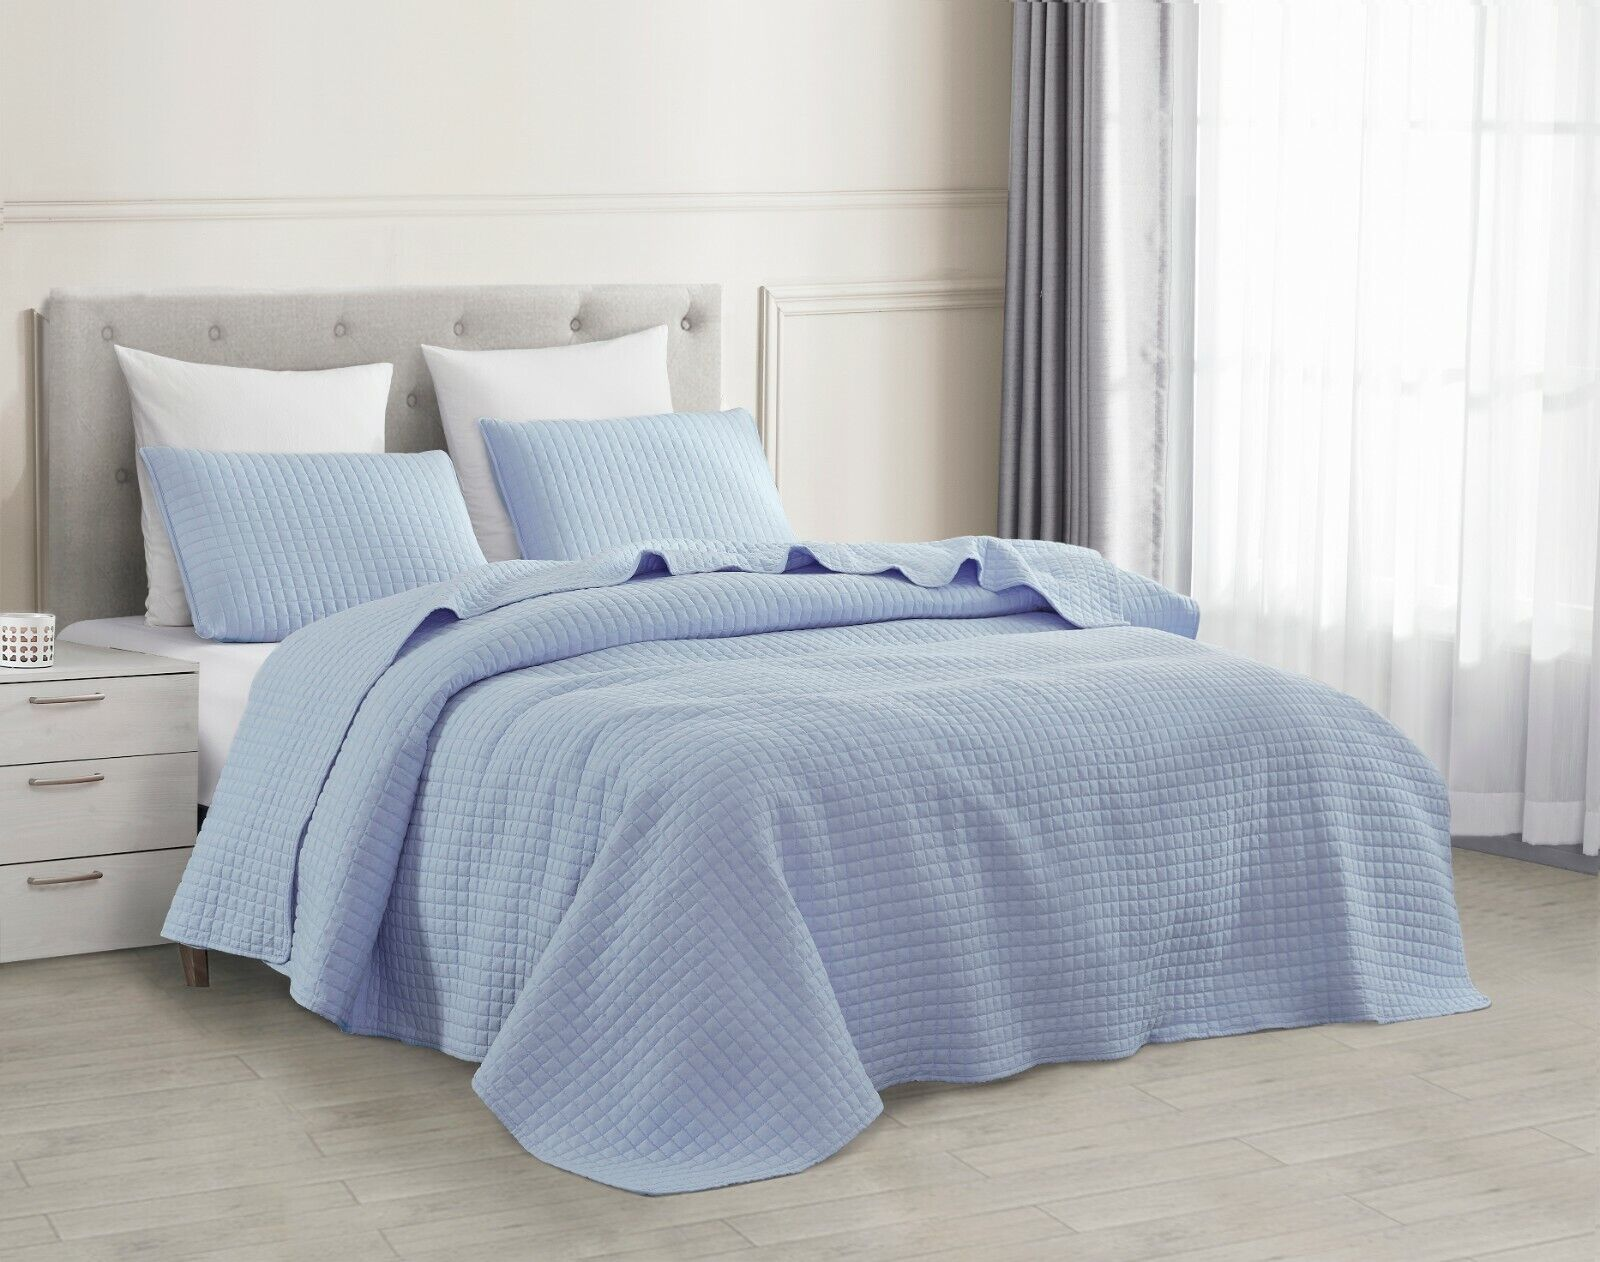 Picture of: White Queen Bedspread Set Geometric Themed Bedding Square Pattern Contemporary For Sale Online Ebay